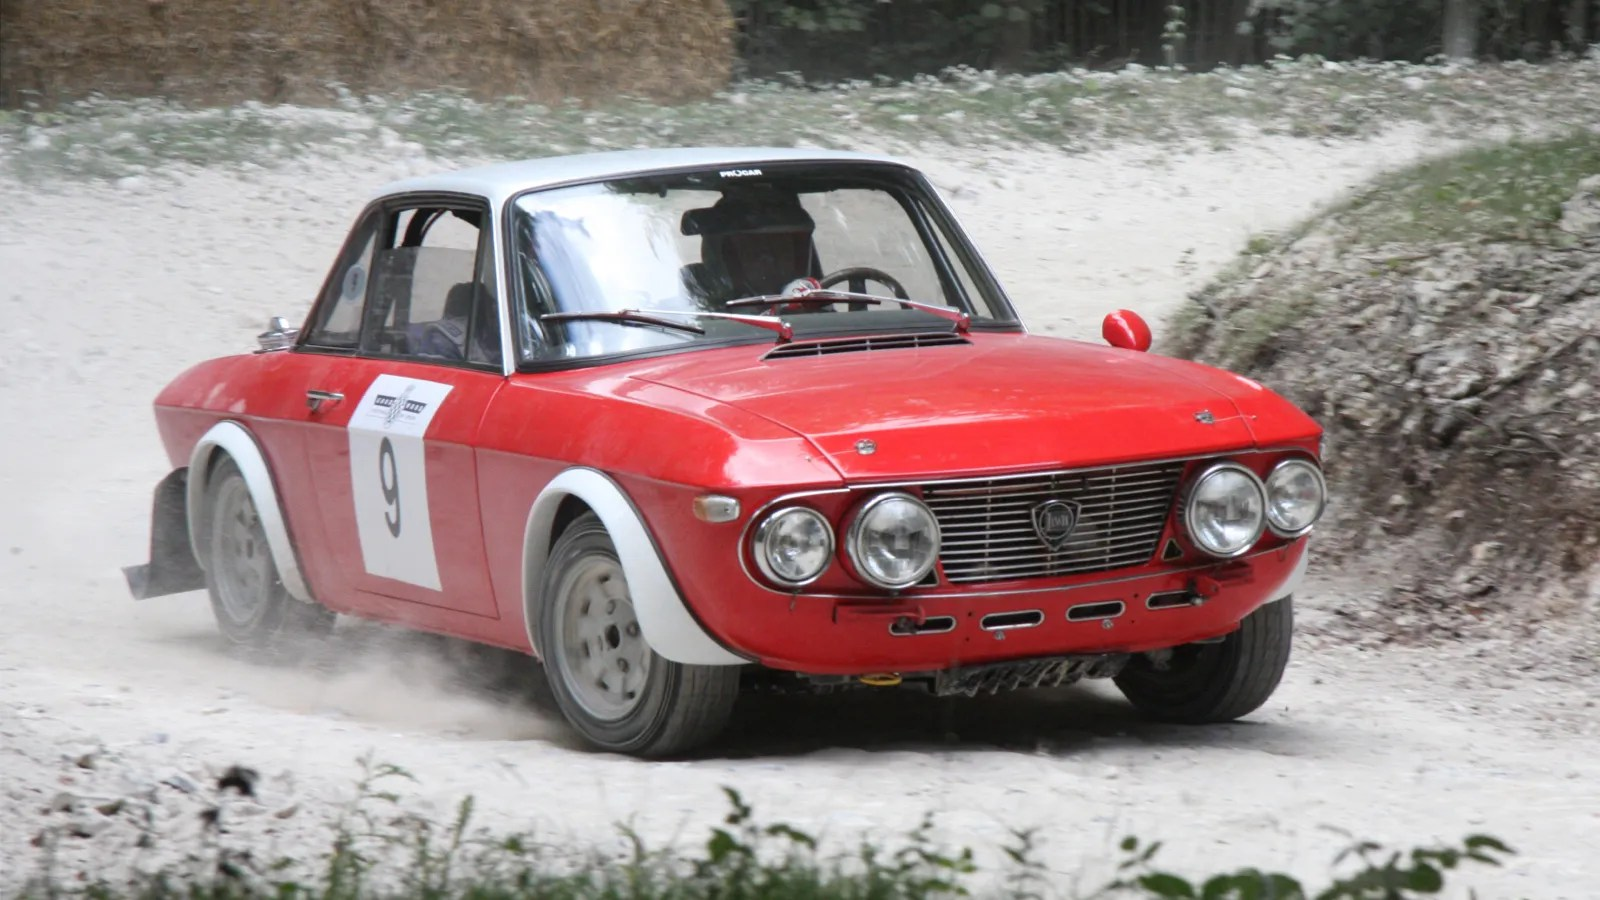 How To Put A Wallpaper On Your Car Your Ridiculously Awesome Rally Lancia Fulvia Wallpaper Is